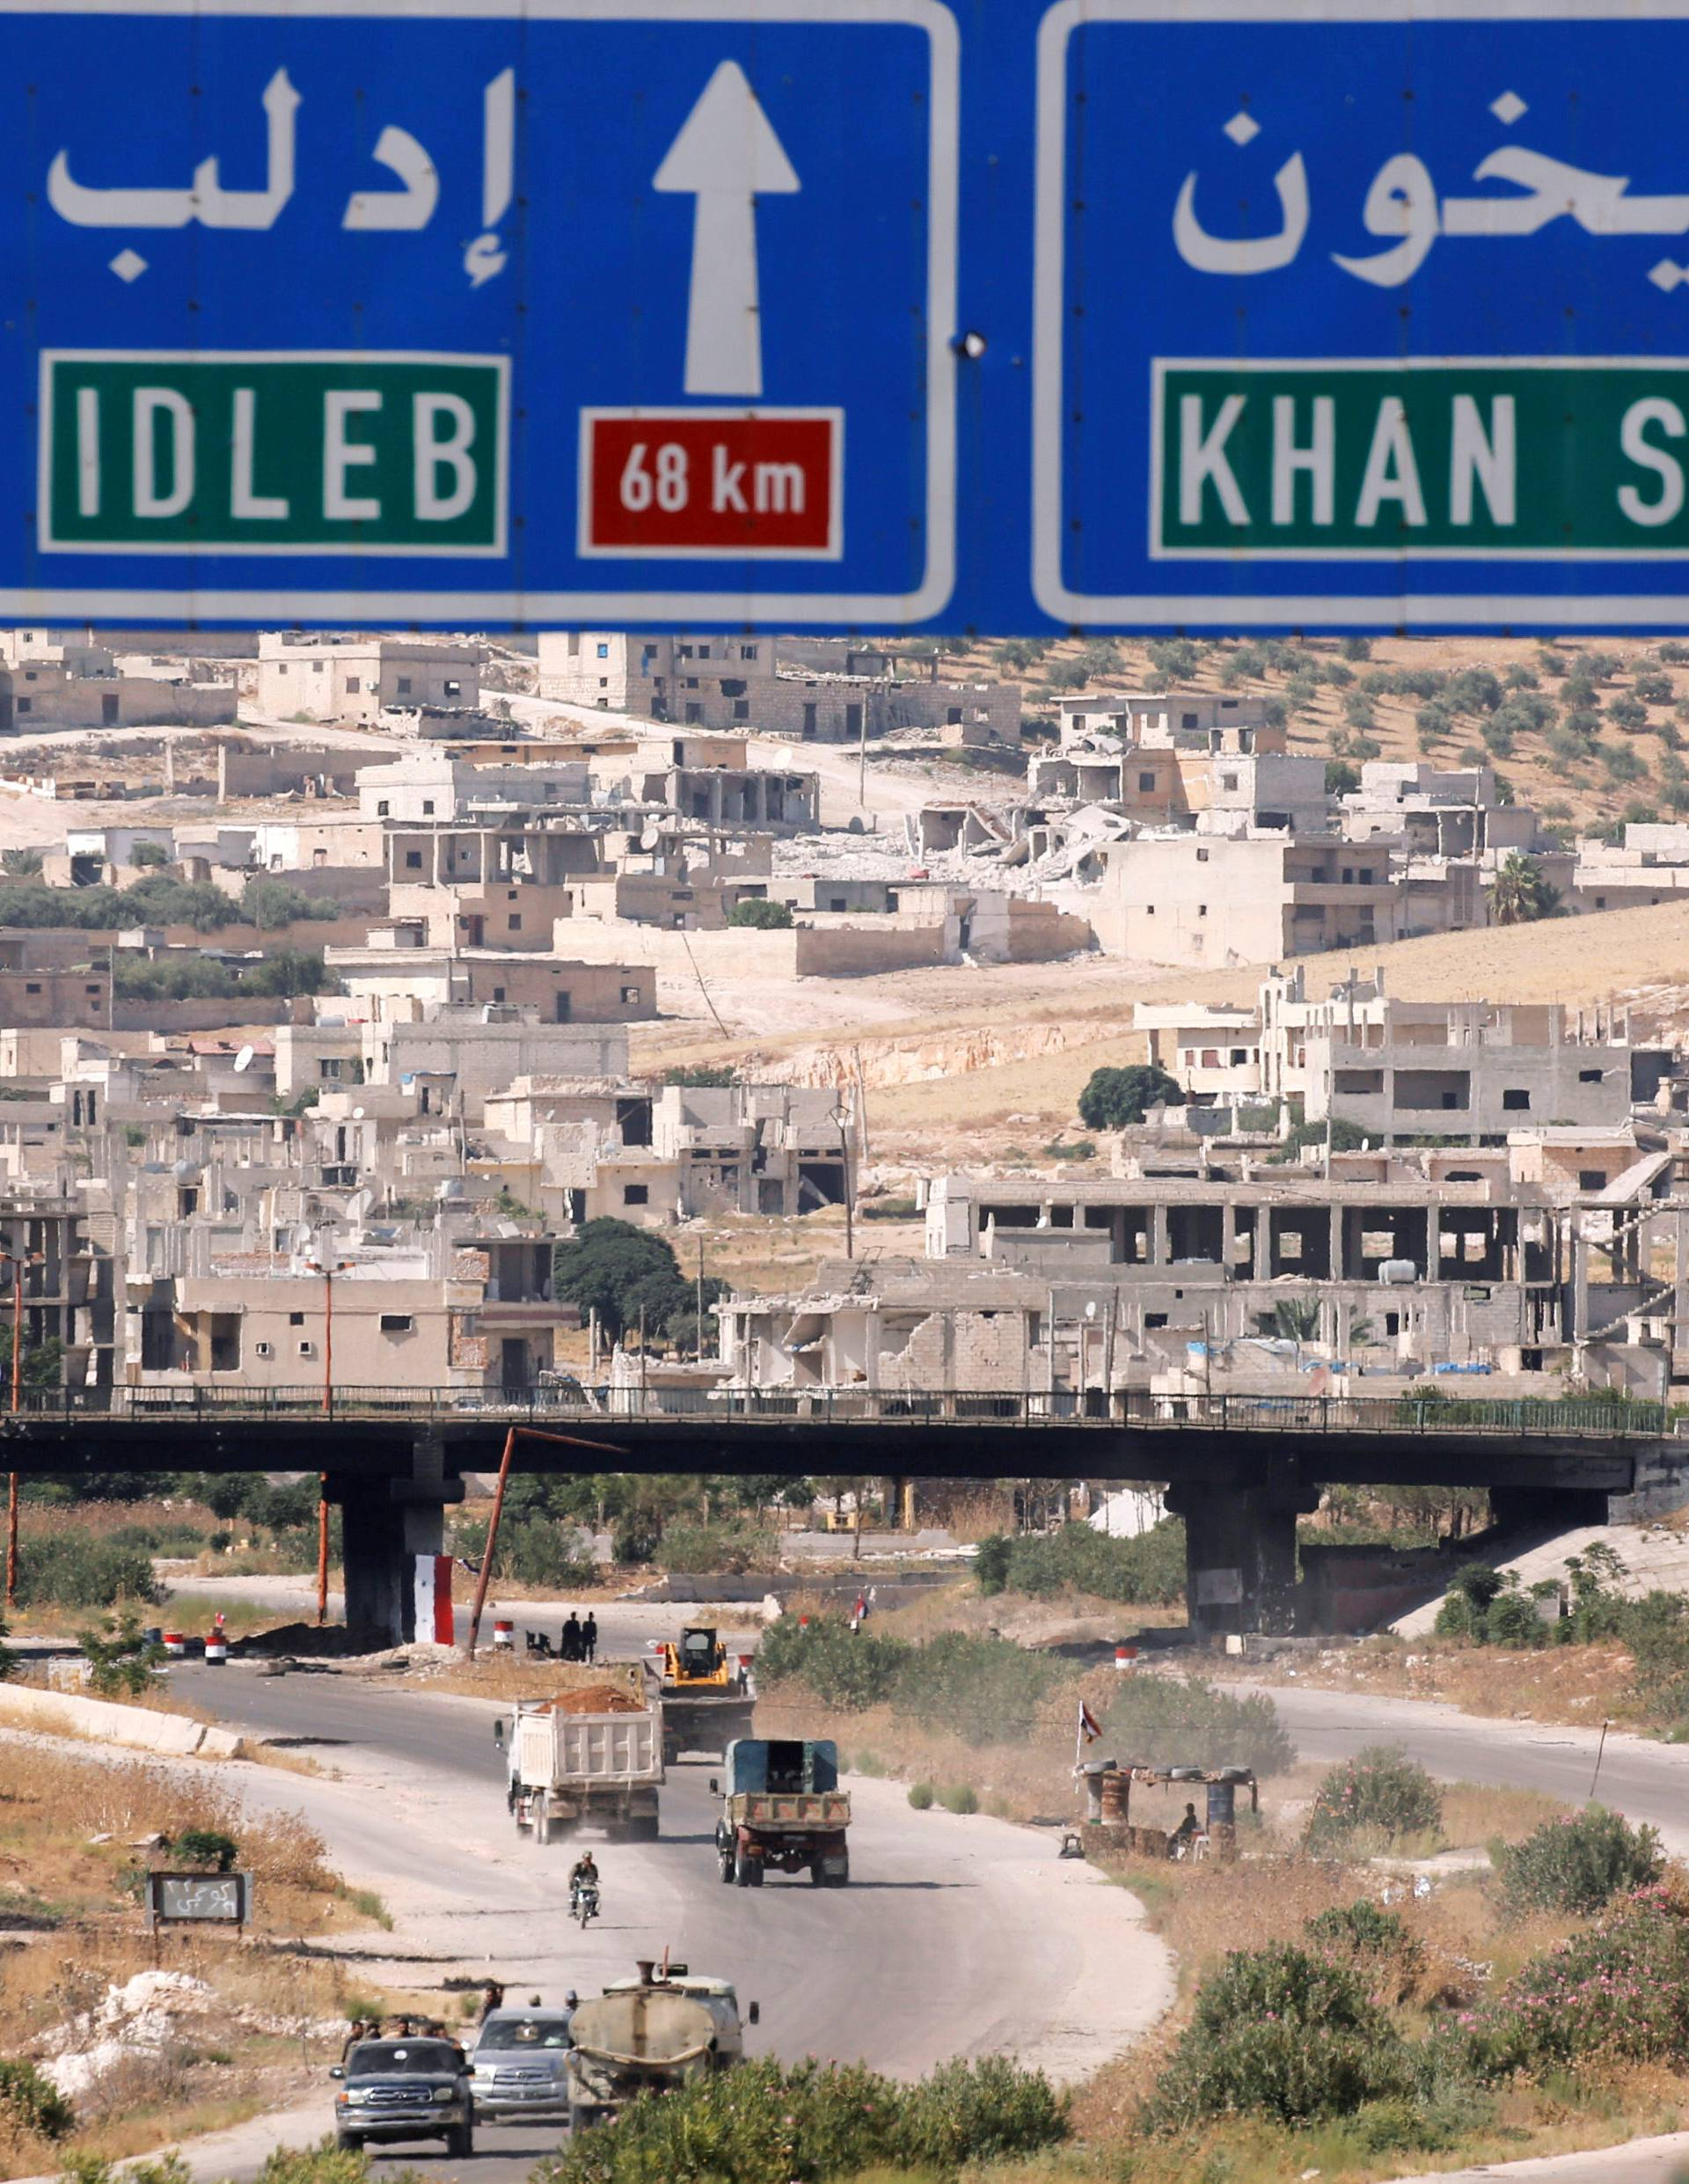 FILE PHOTO: Road direction signs are pictured at the entrance en route to Khan Sheikhoun, Idlib